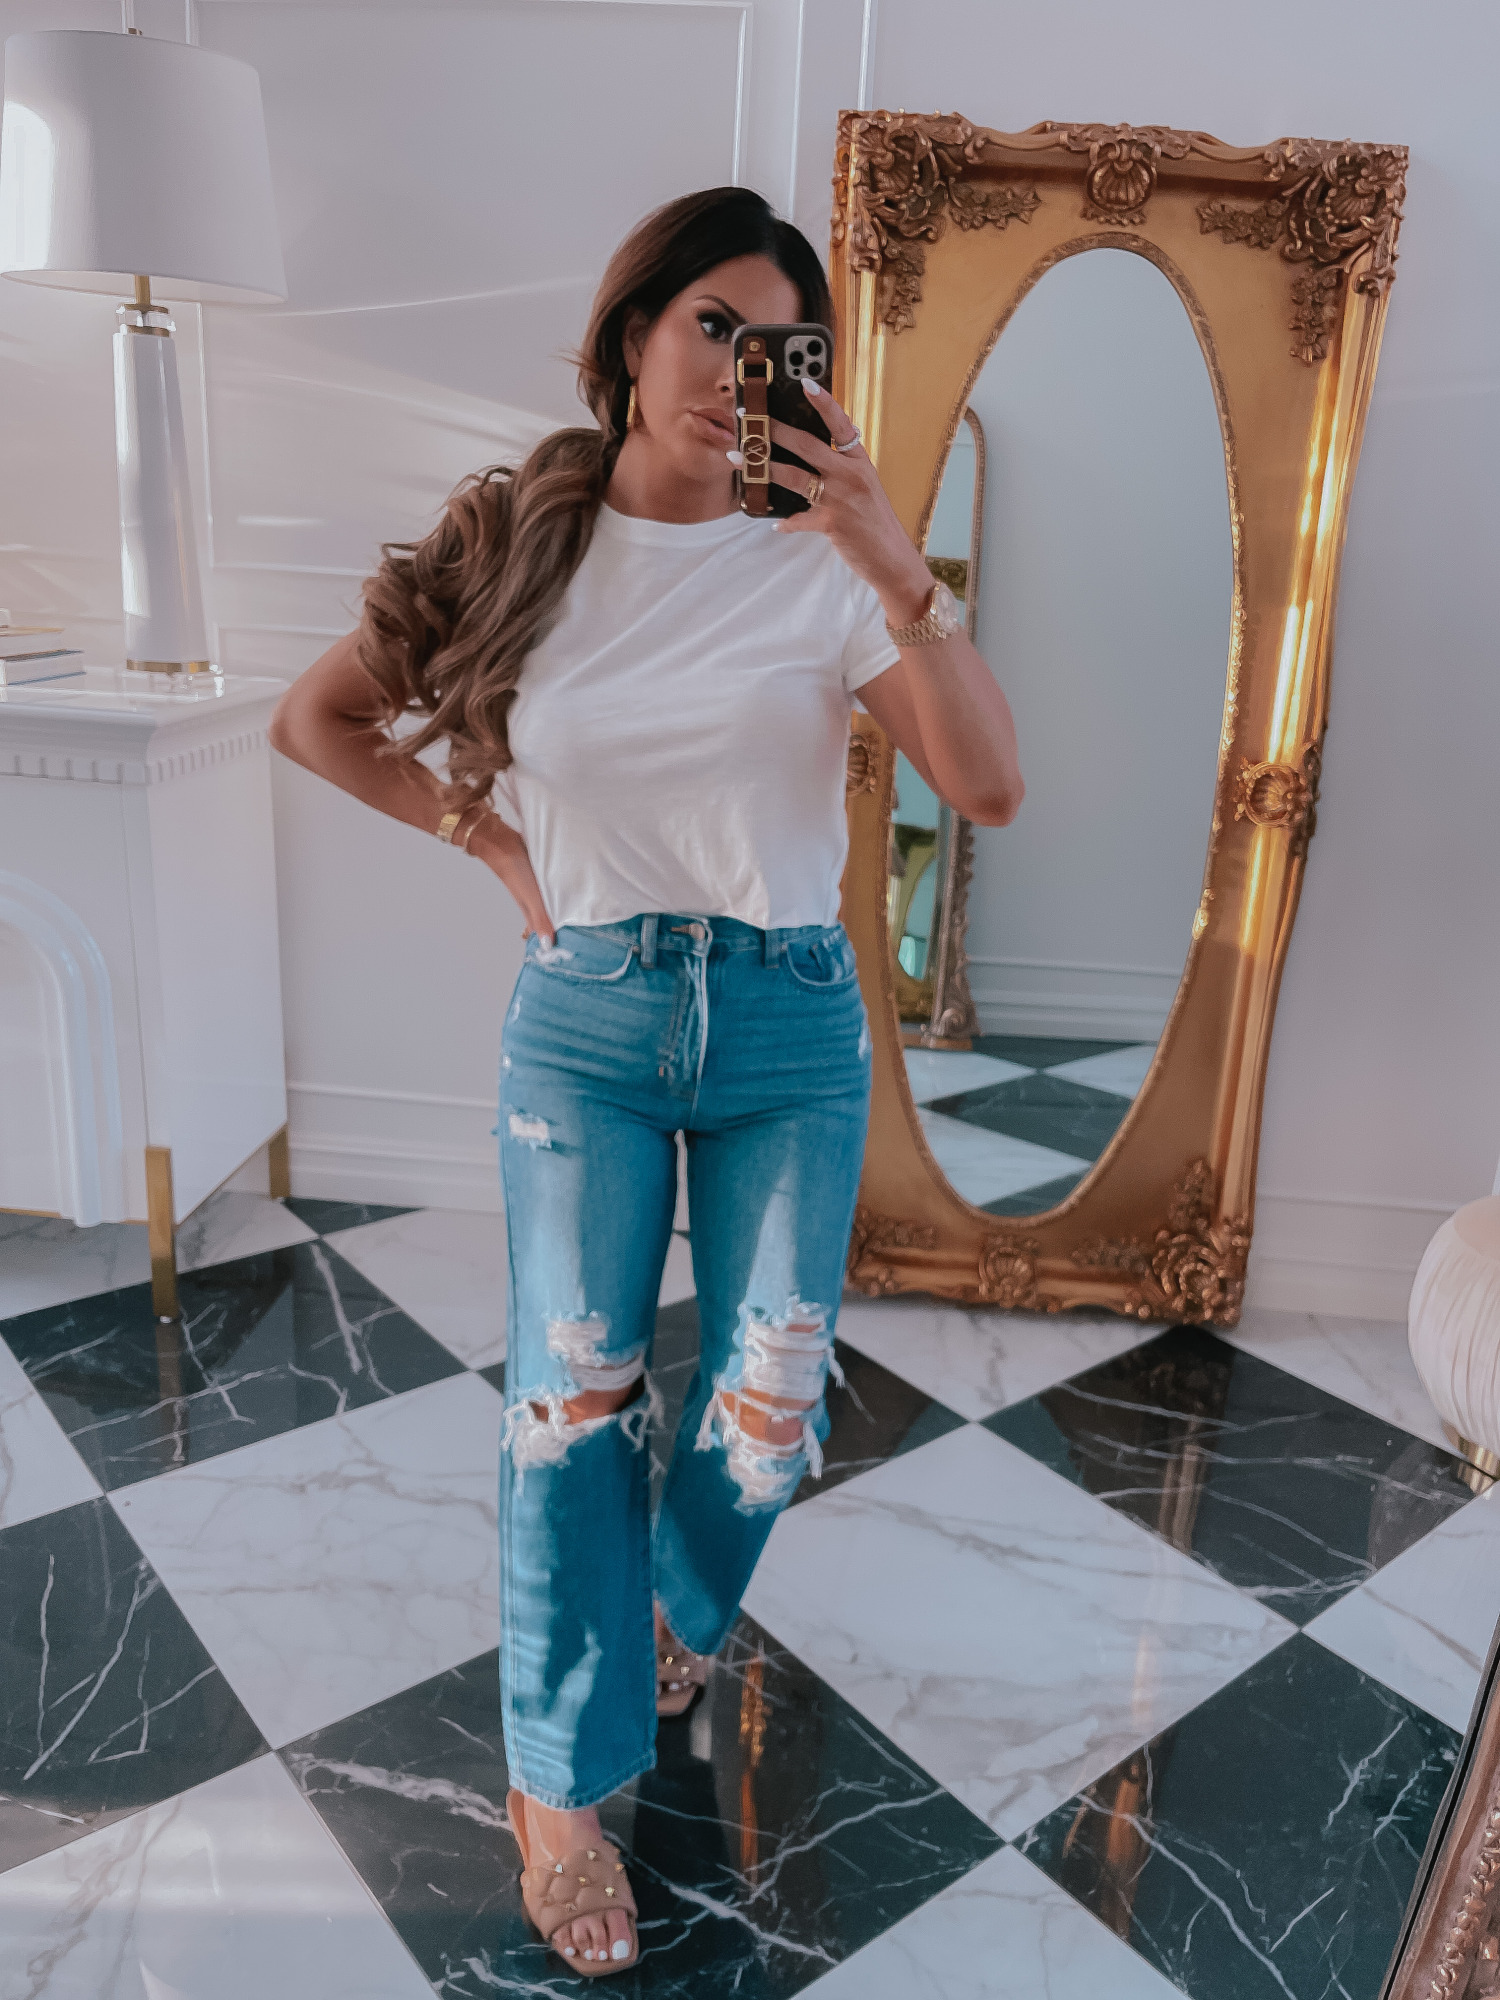 Best Basic White T-Shirt, Ripped Jeans, Spring Outfit Ideas 2021, Nude Sandals, Emily Ann Gemma, Best Closet Basics Spring 2021 |Spring Fashion by popular US fashion blog, The Sweetest Thing: image of Emily Gemma wearing a white t-shirt, distressed denim and tan studded slide sandals.